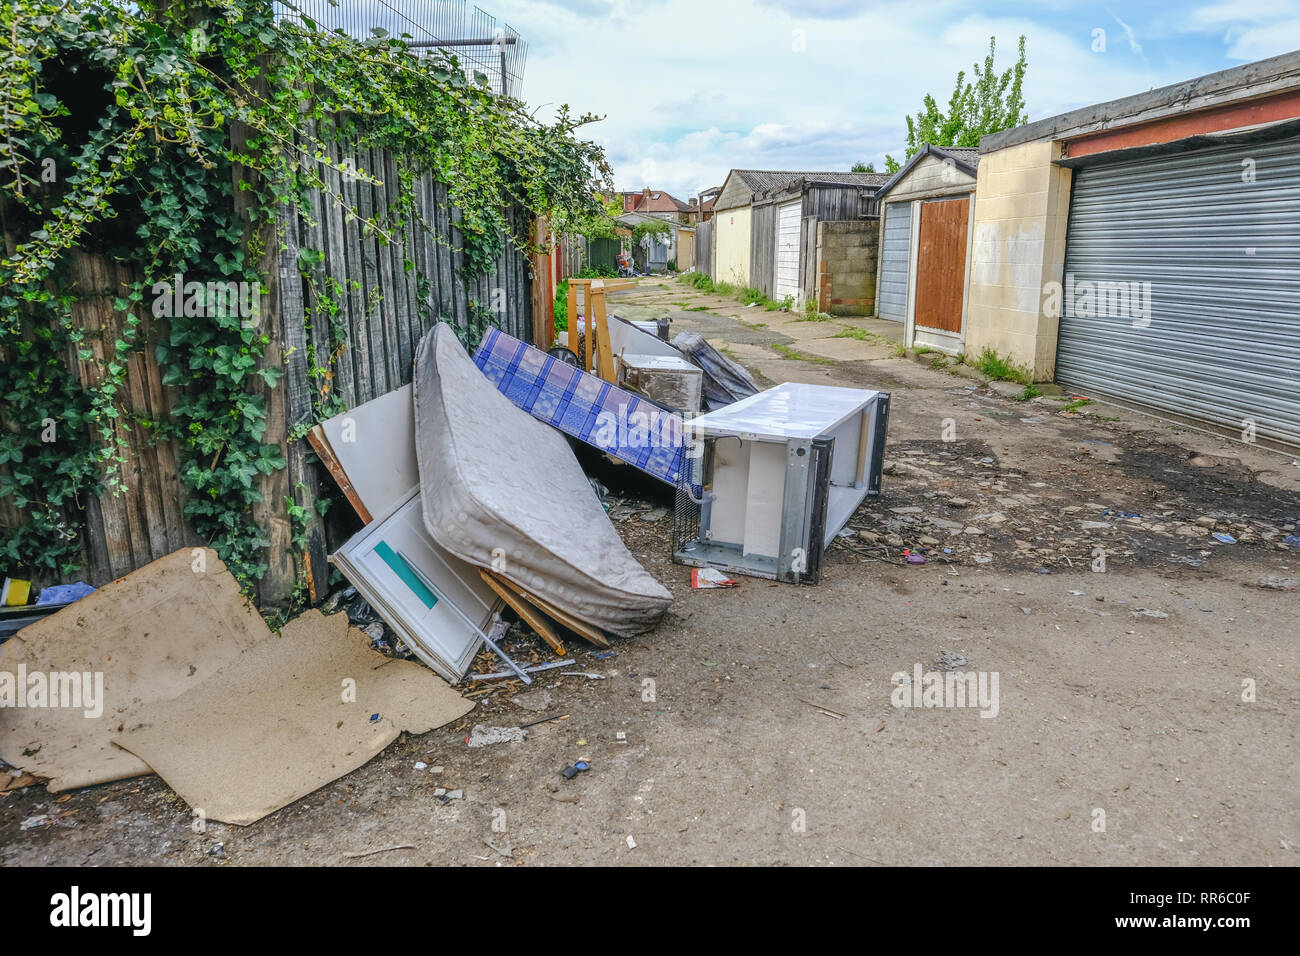 Large pile of rubbish, rotting after being fly tipped and left in an urban alleyway. Demonstrates anti-social behaviour. - Stock Image